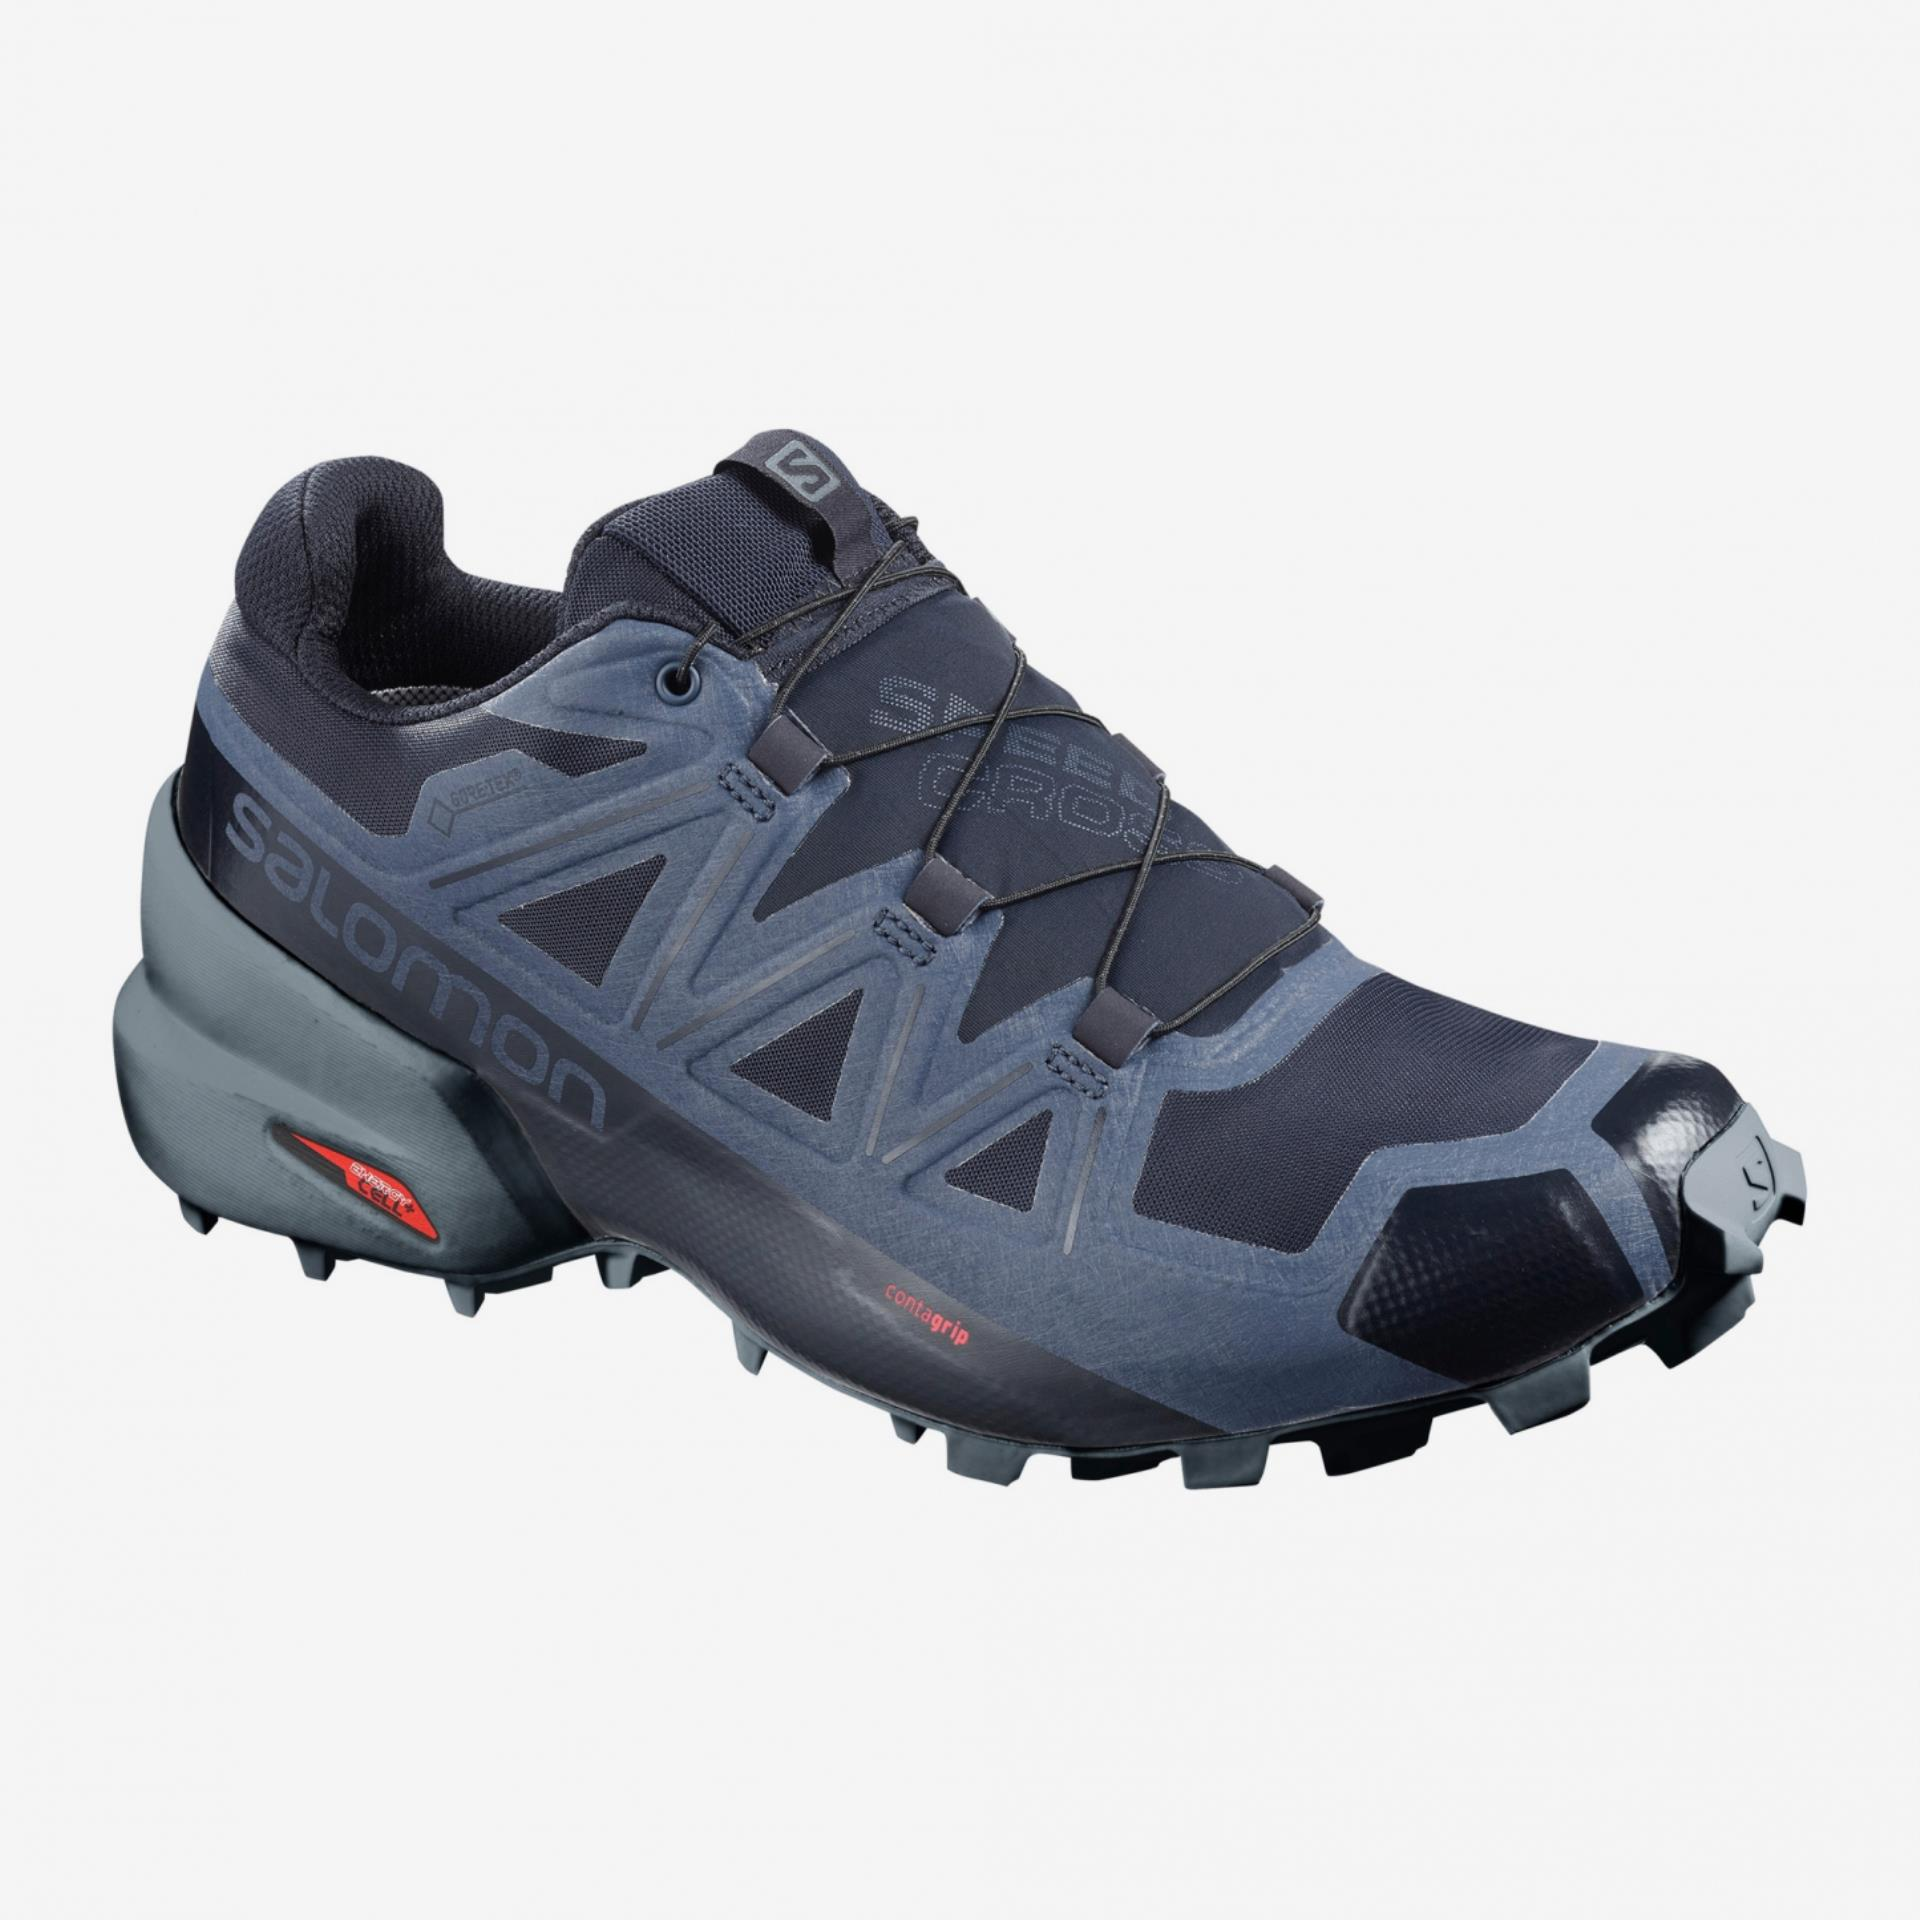 Salomon Speedcross 5 GTX, blackurban chic 201920